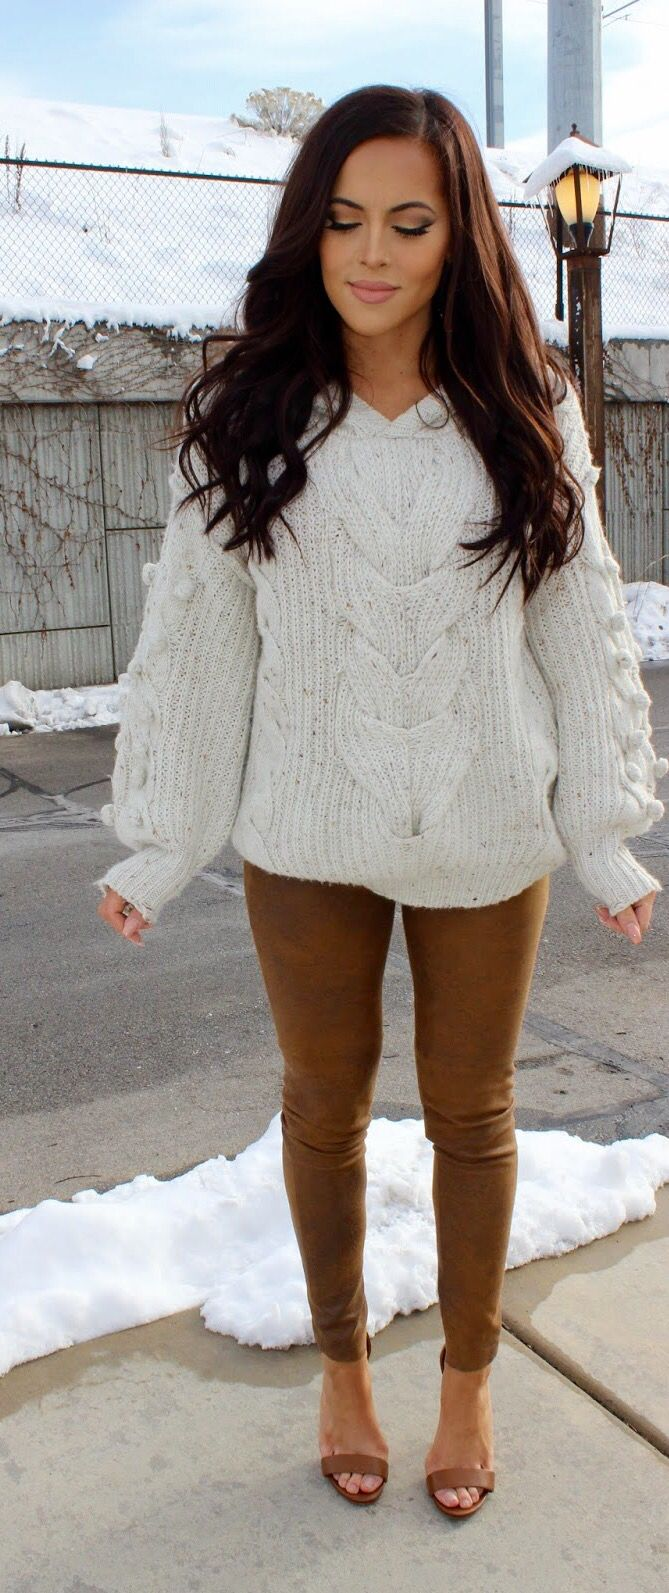 Neutrals Cream Cable Knit Sweater And Brown Faux Leather Pants Leggings Love This Simple Comfy Outfit Look Dark Brown Hair W Dark Brown Hair Outfits Clothes